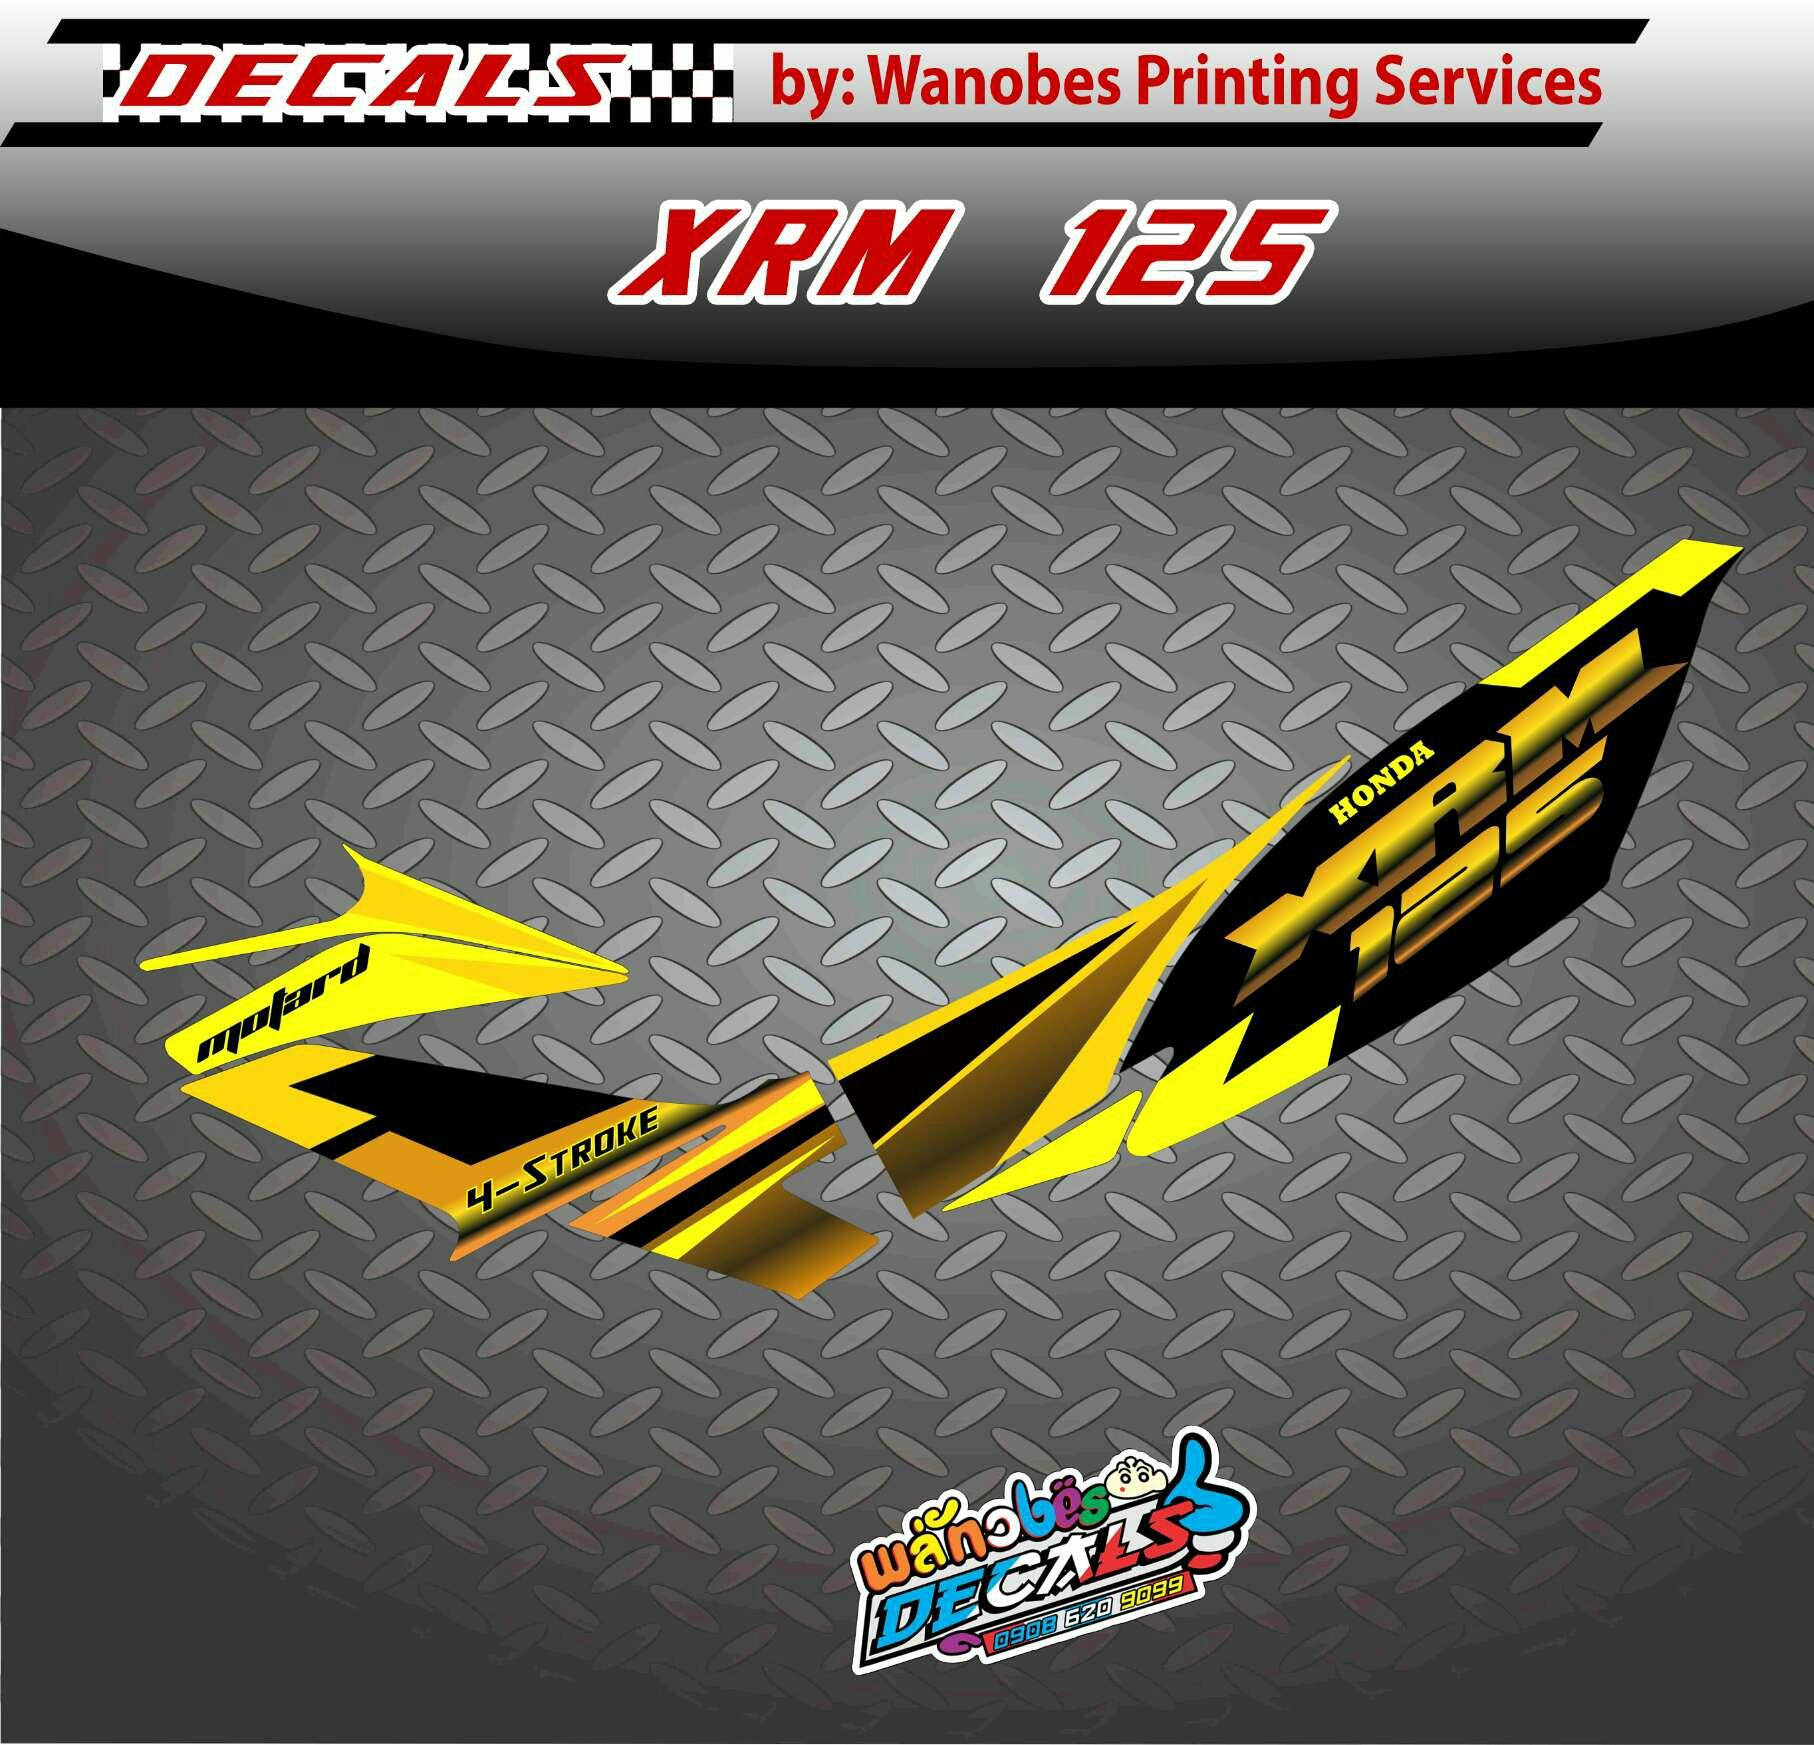 Xrm125 Sticker Design - Mary Rosh